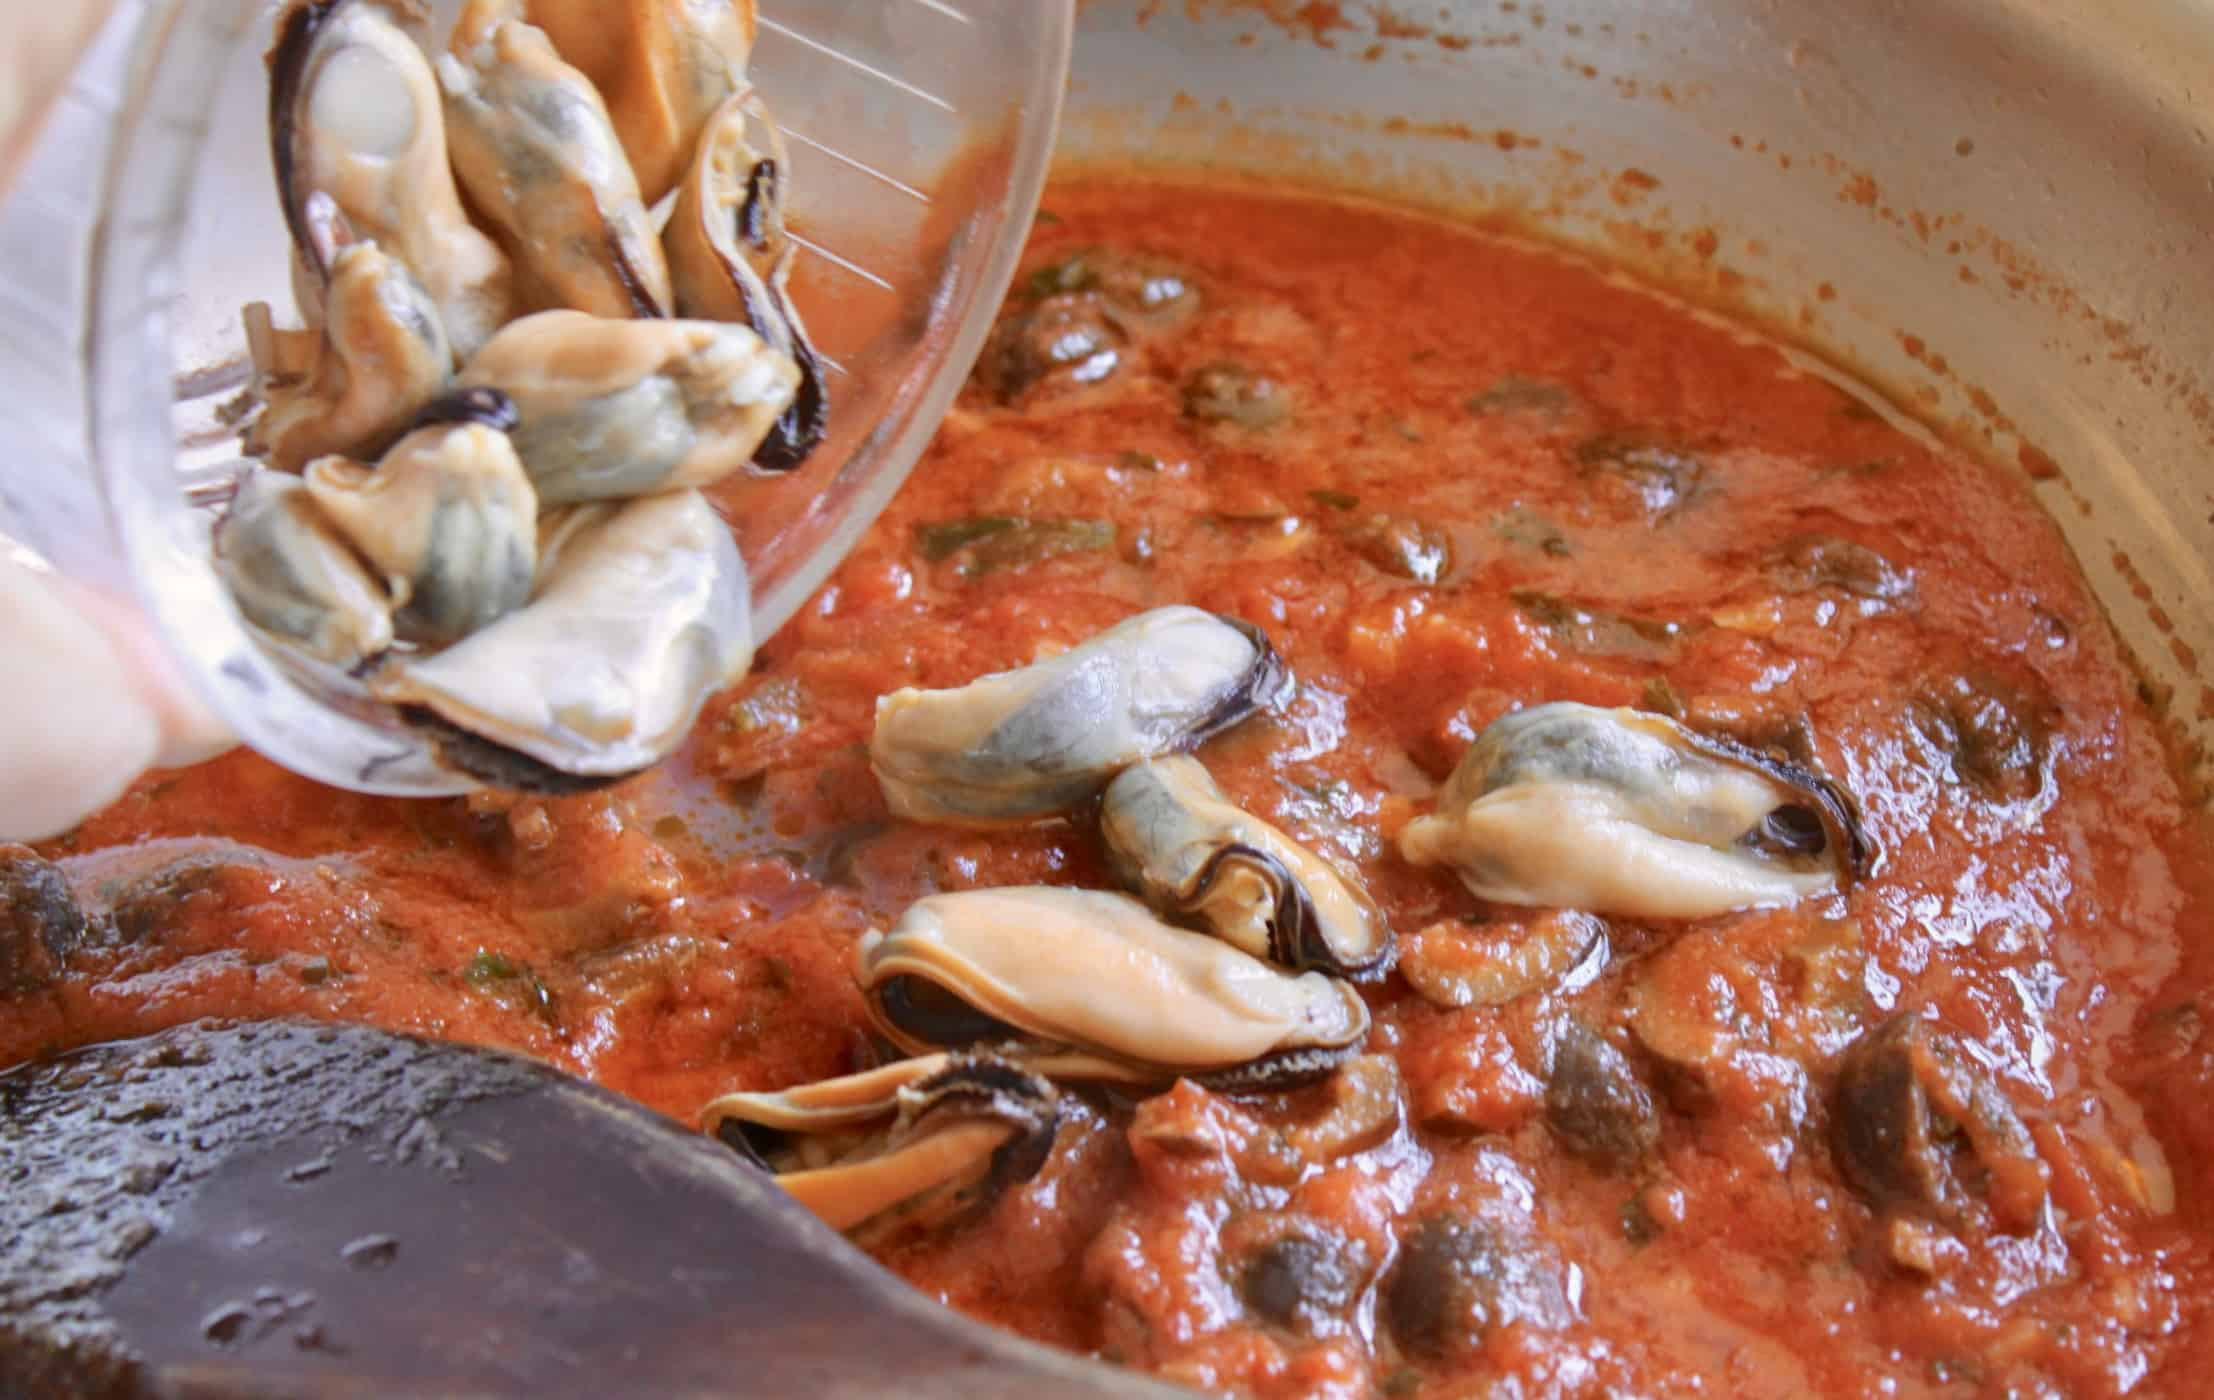 adding mussels to the sauce